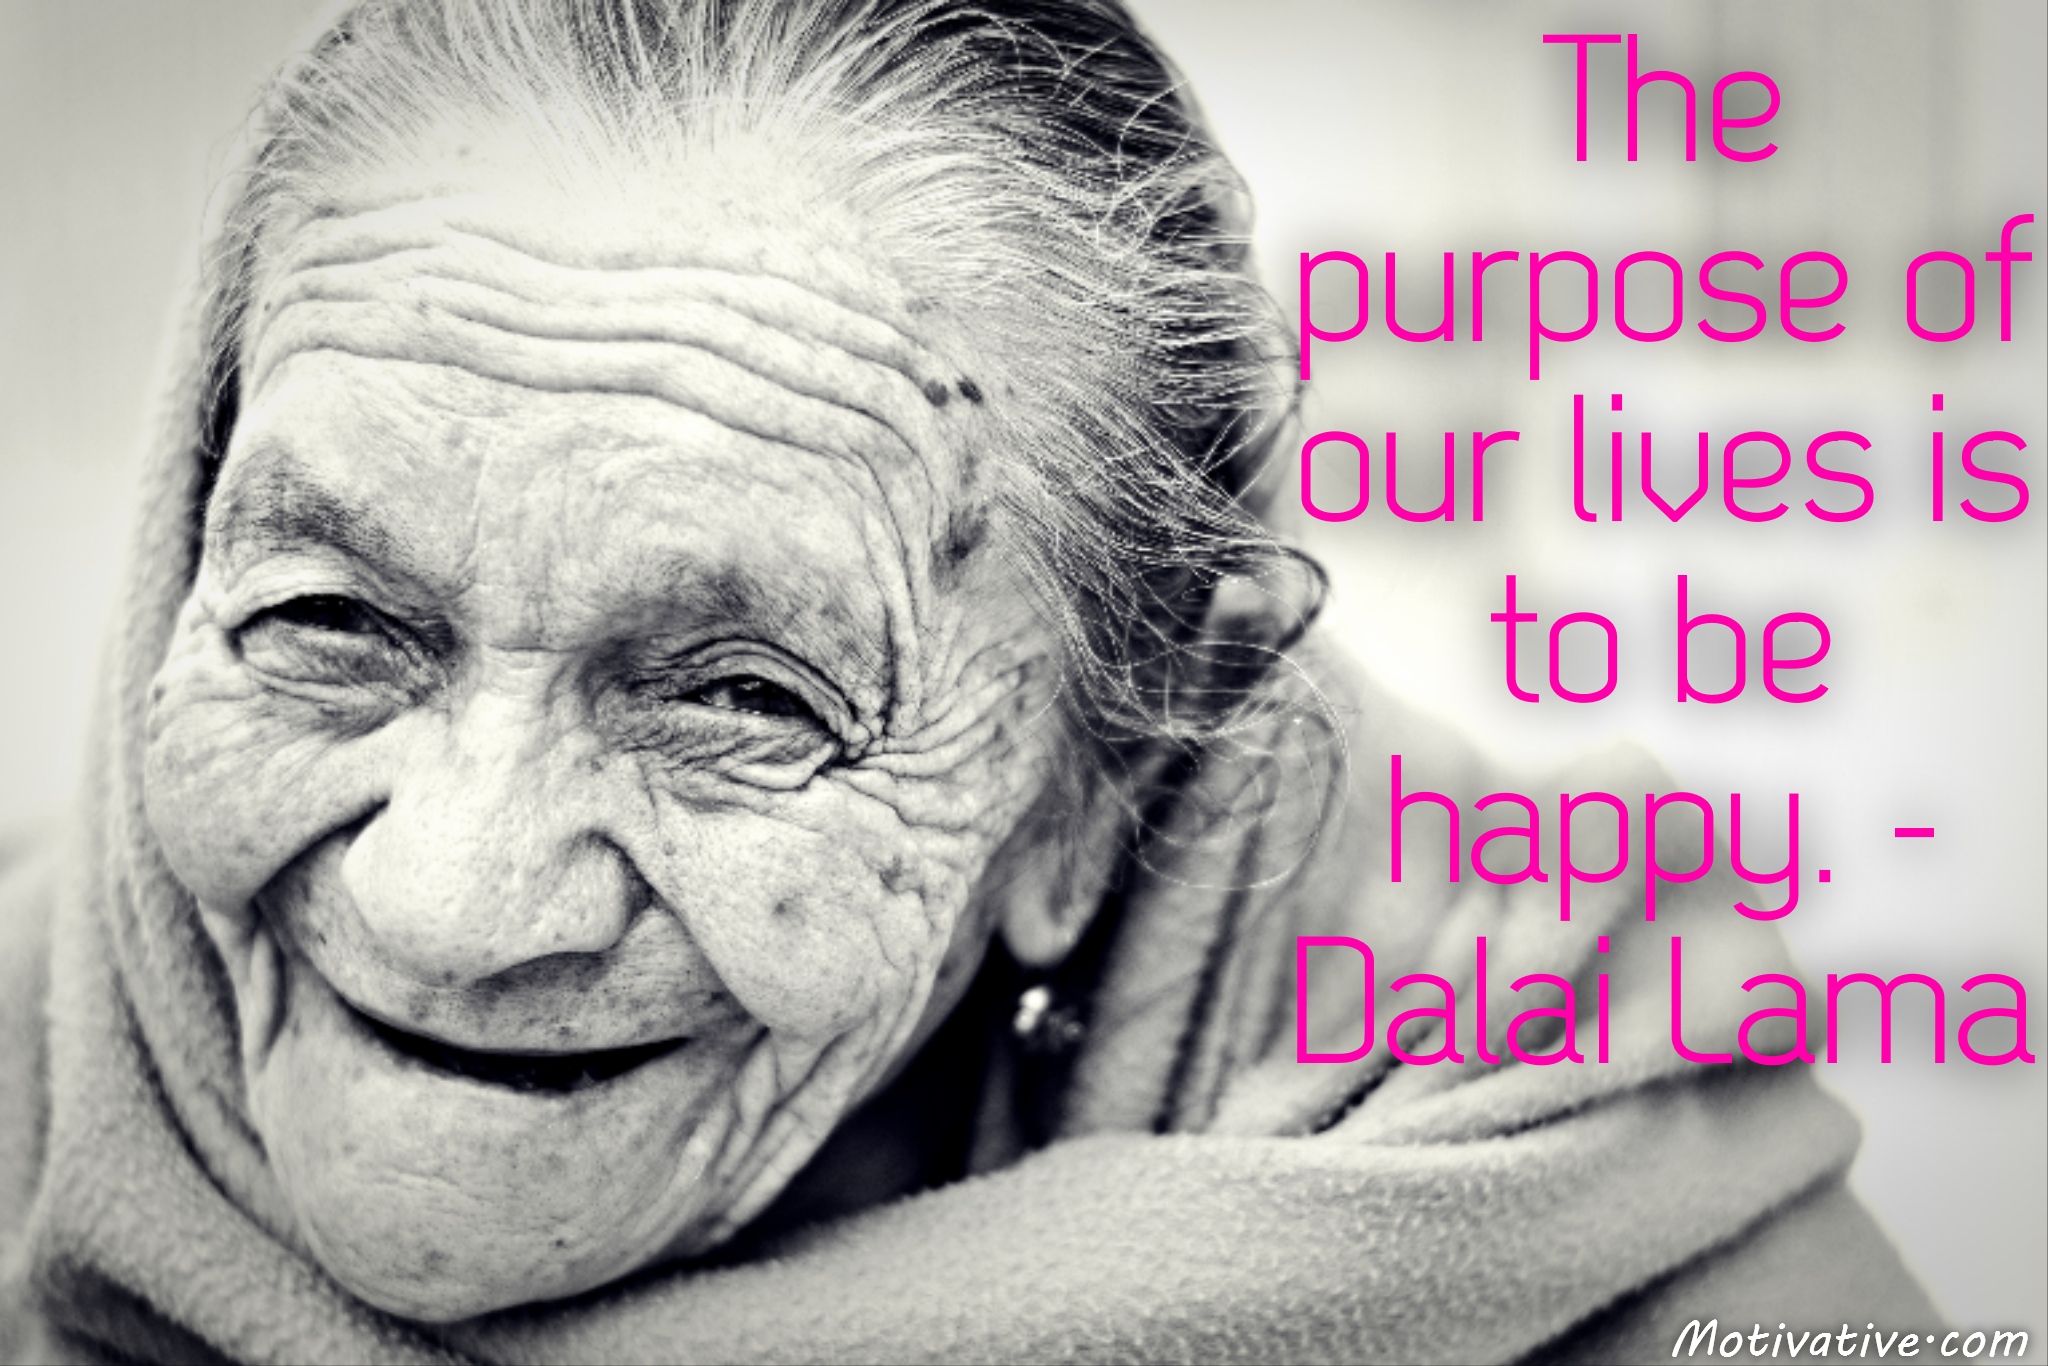 The purpose of our lives is to be happy. – Dalai Lama